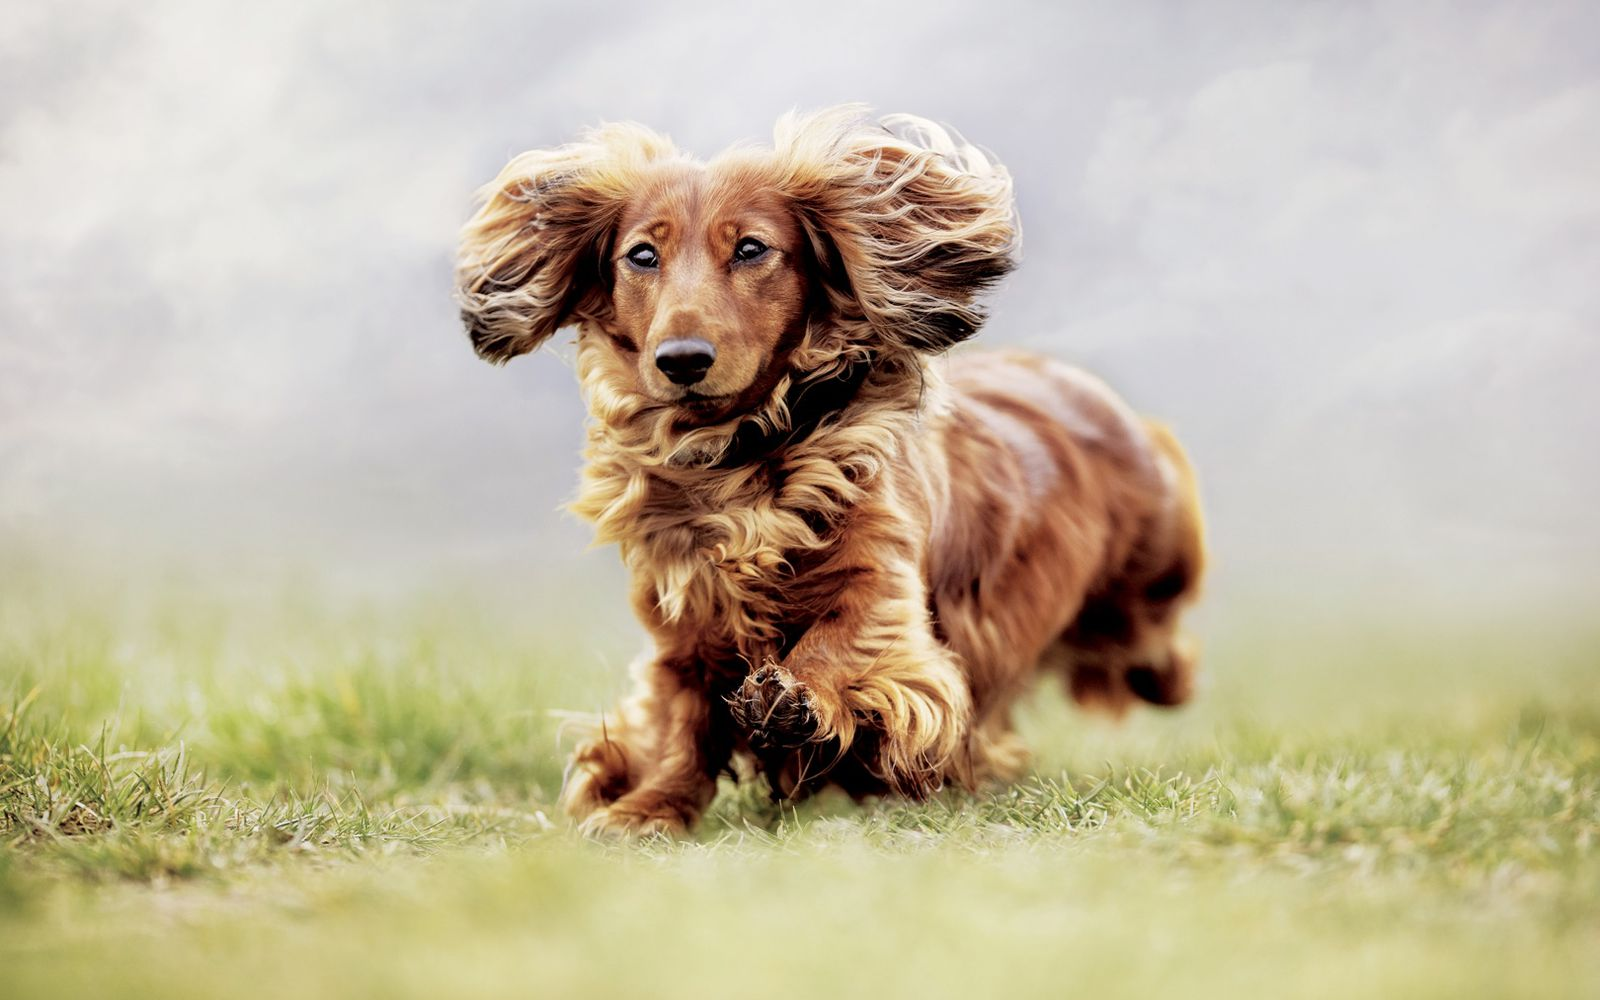 Dachshund (Long Haired) - Lifestyle